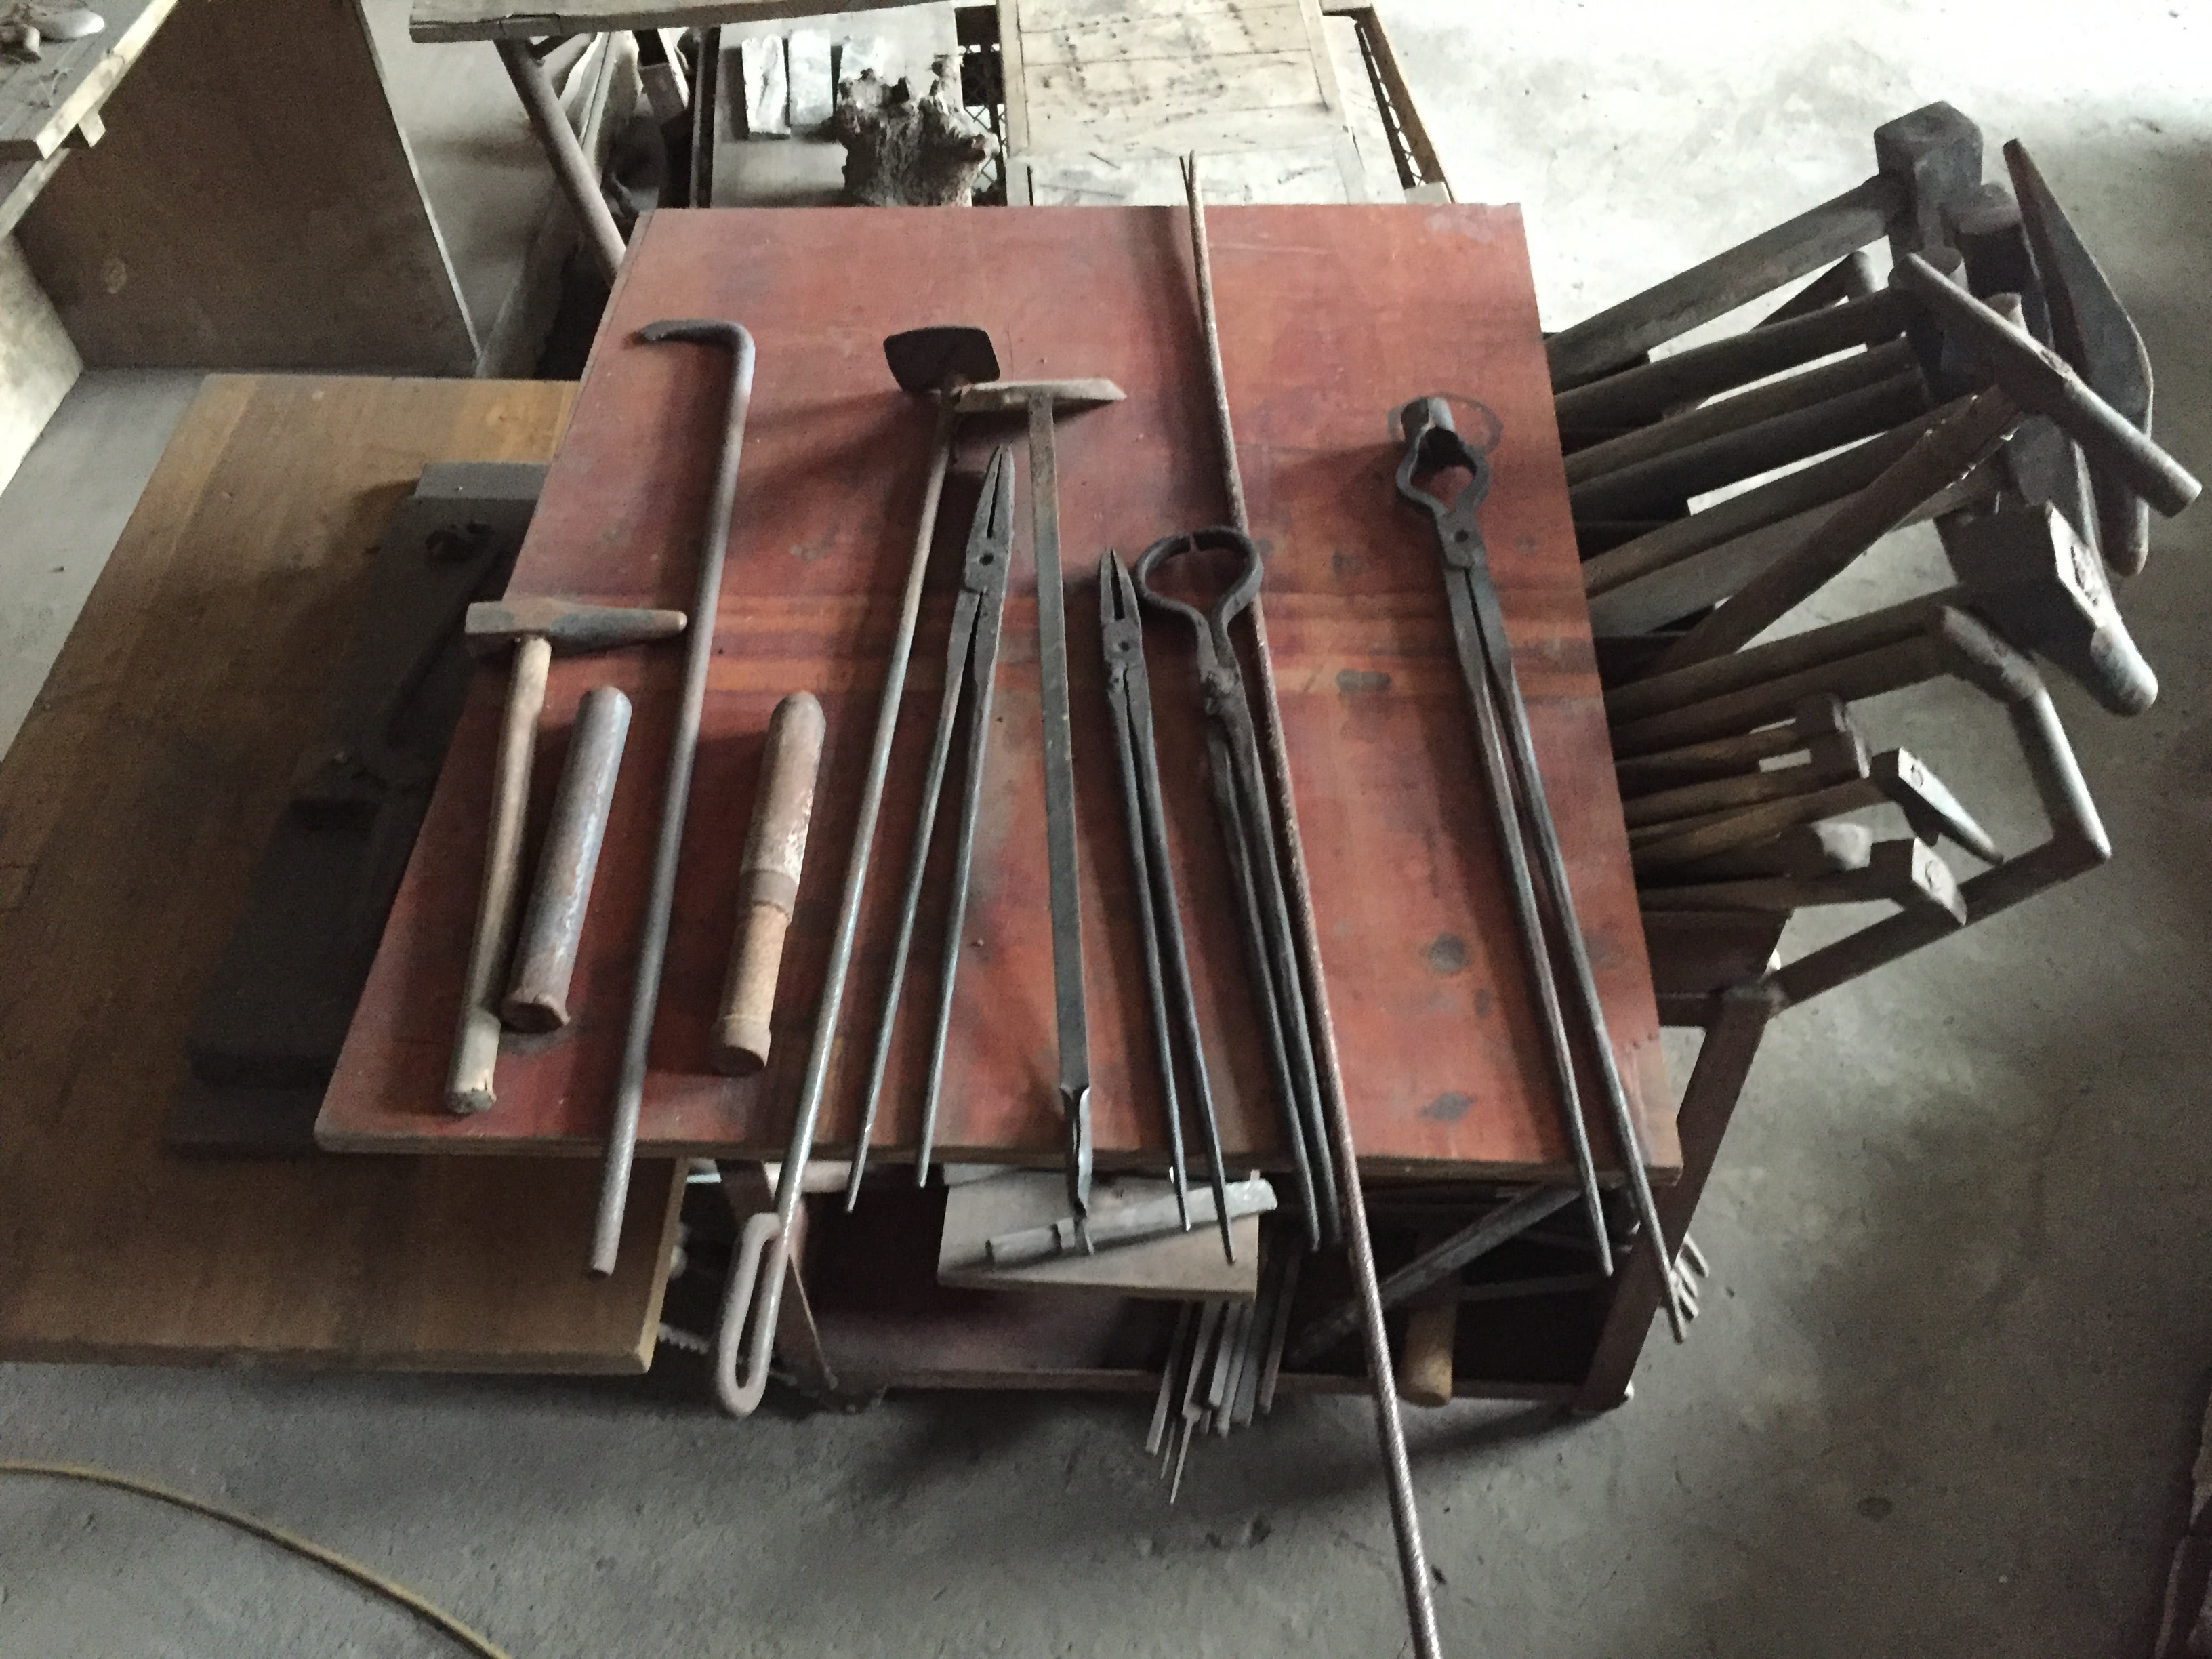 Metalsmithing tools